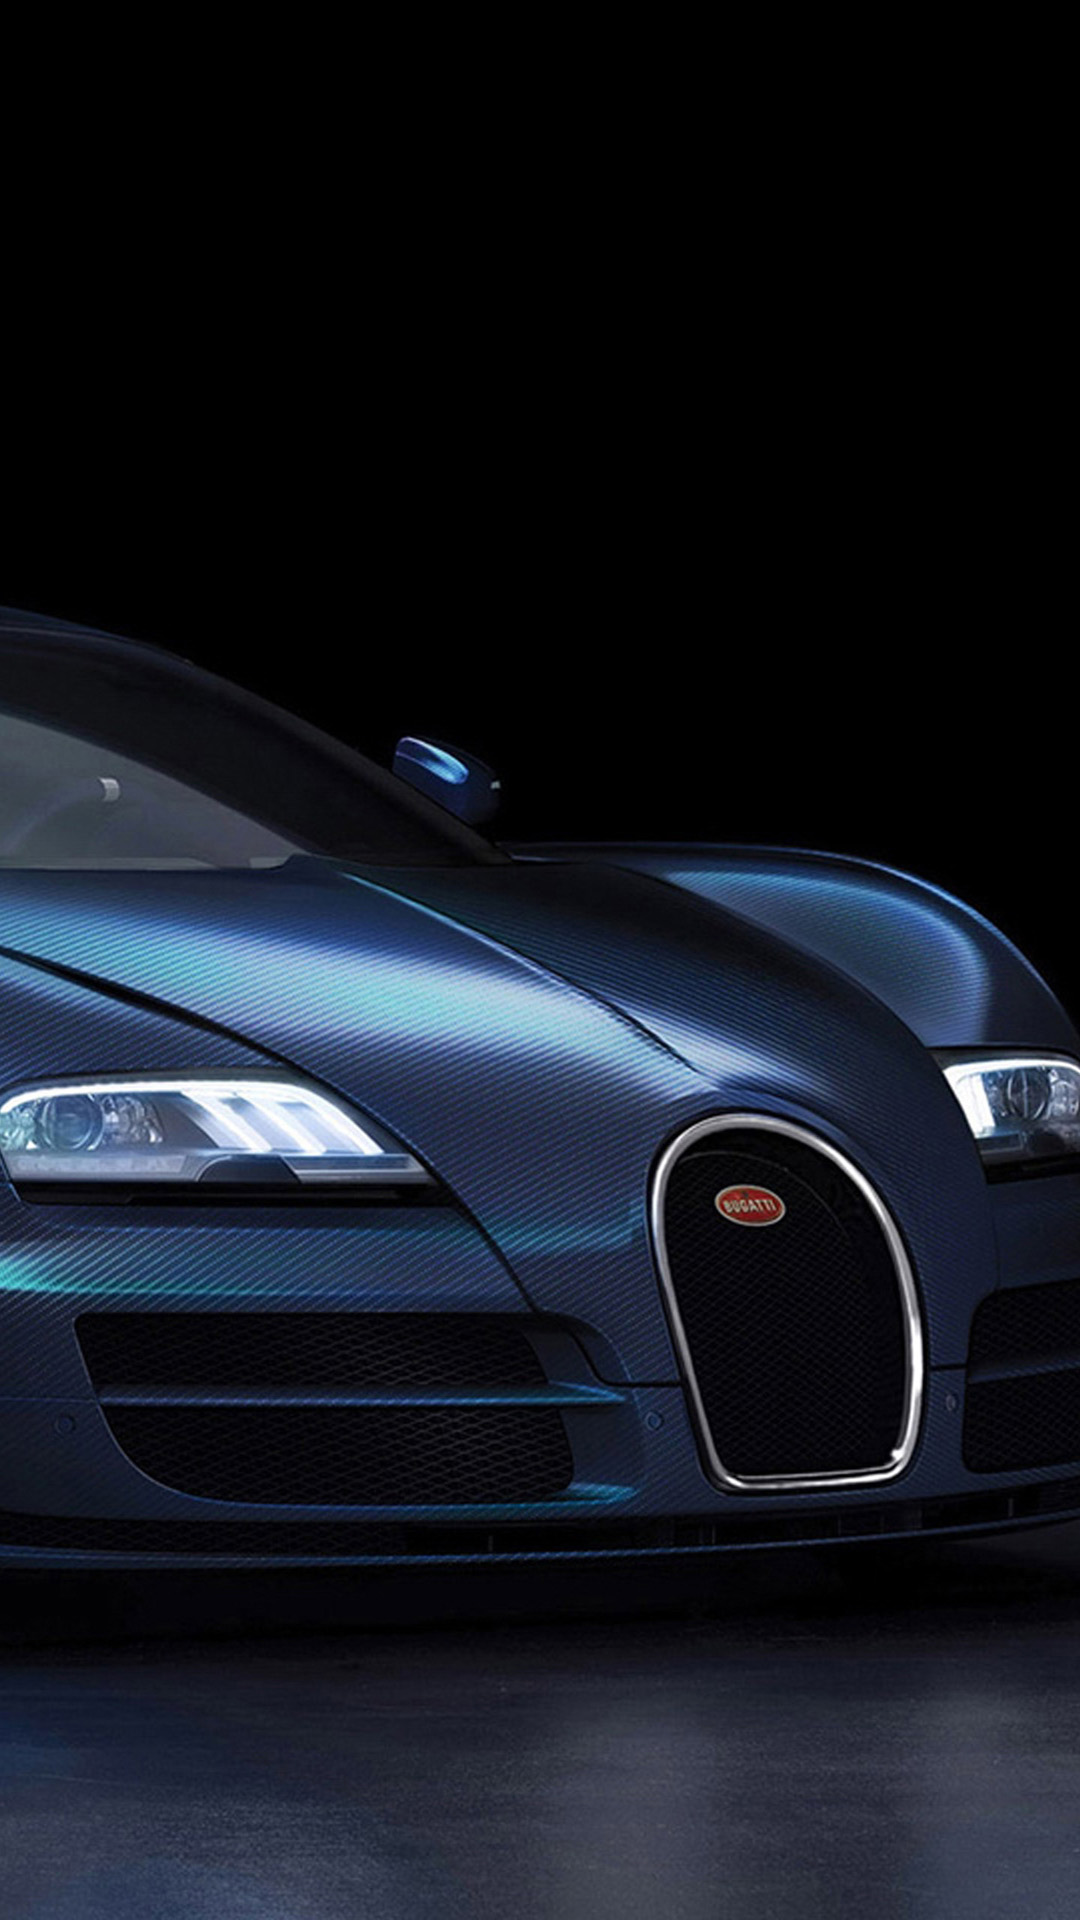 Bugatti veyron best htc one wallpapers free and easy to download bugatti veyron voltagebd Image collections